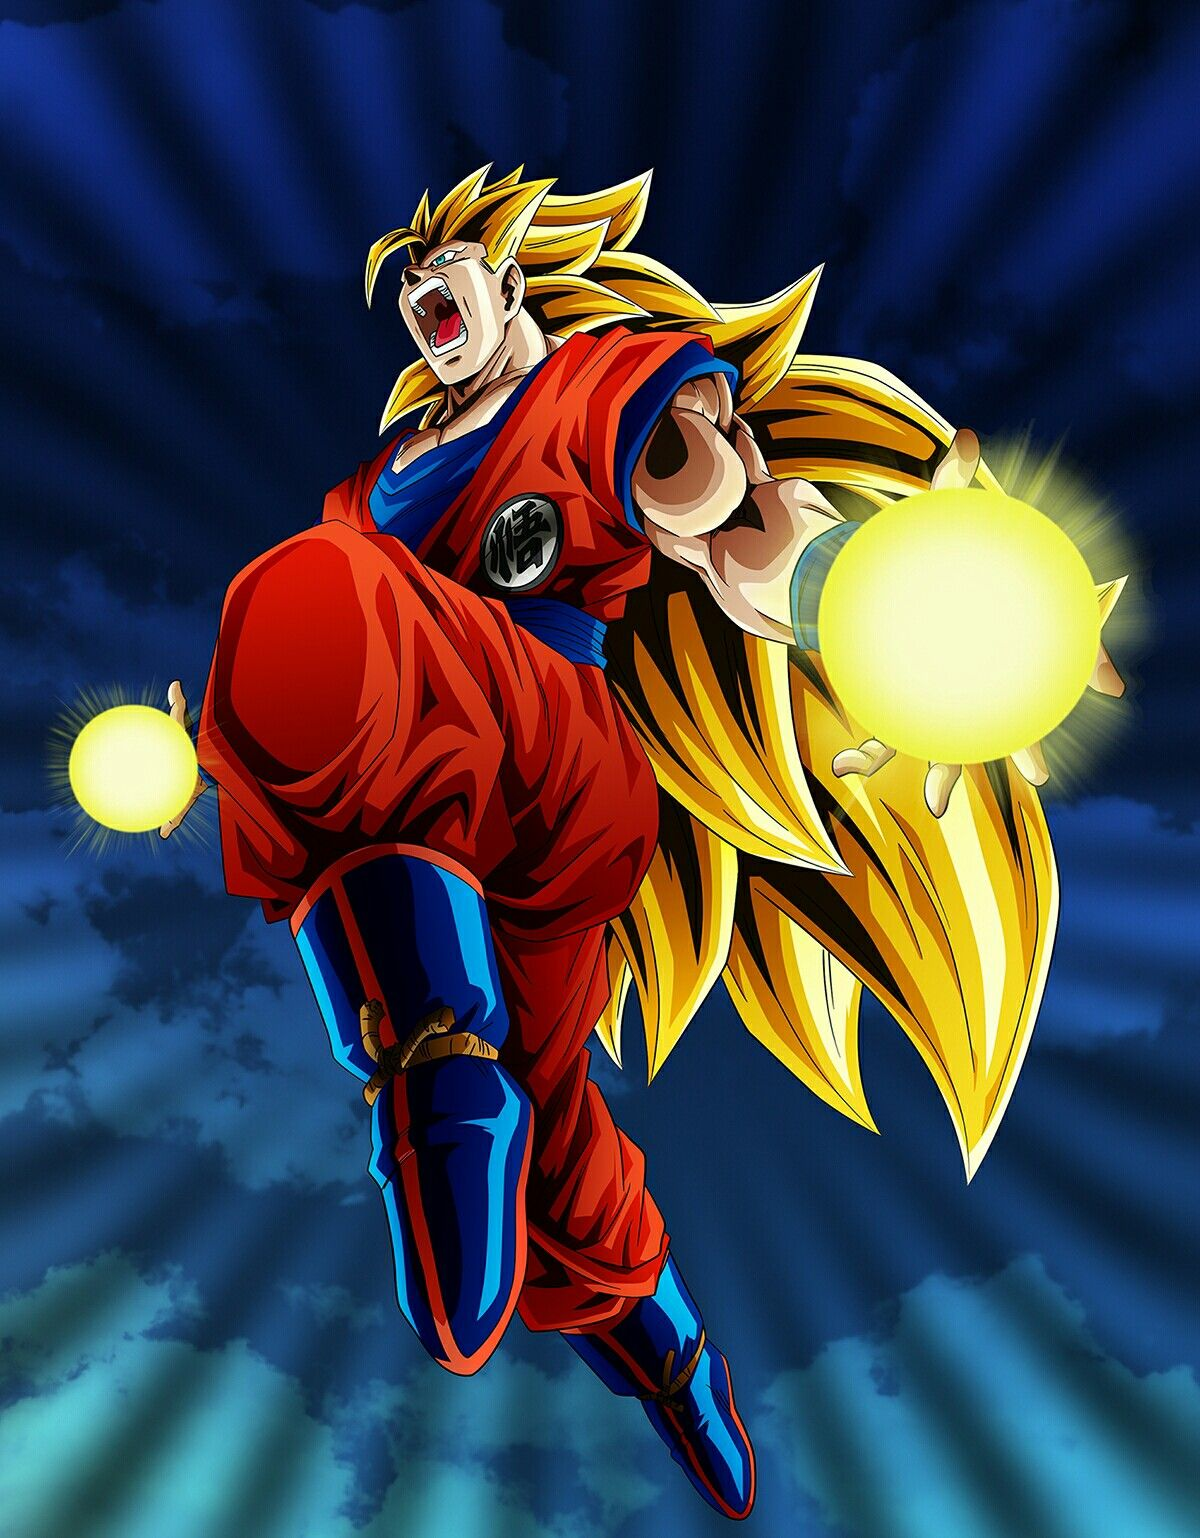 Goku Ssj 3 Universo 7 Dragon Ball Artwork Dragon Ball Art